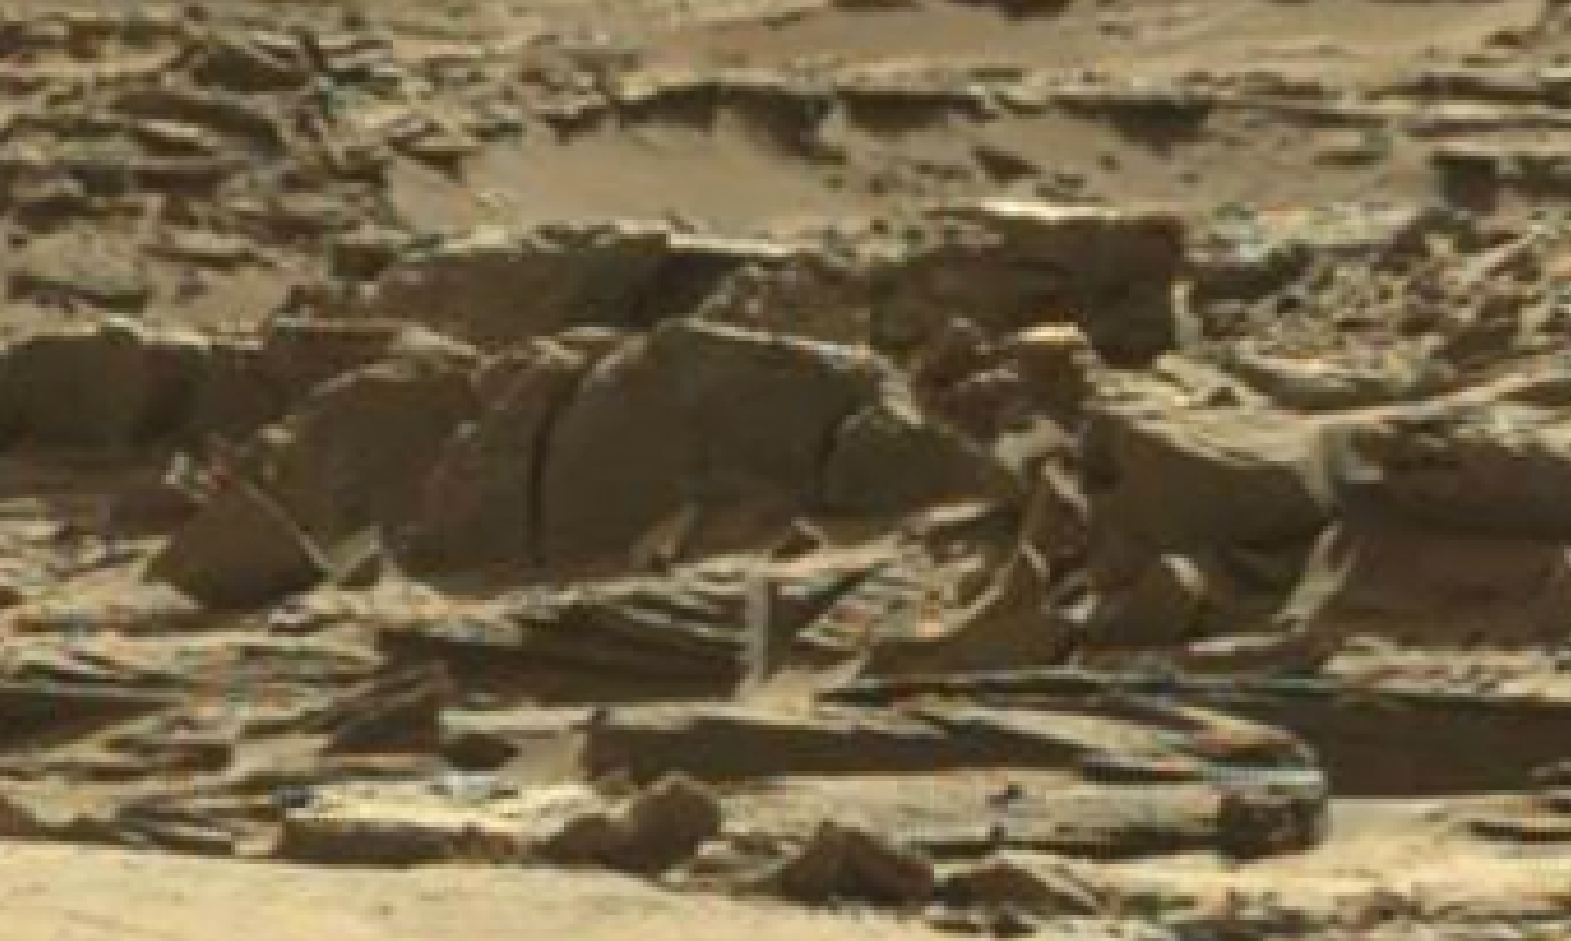 mars sol 1298 anomaly-artifacts 15 was life on mars